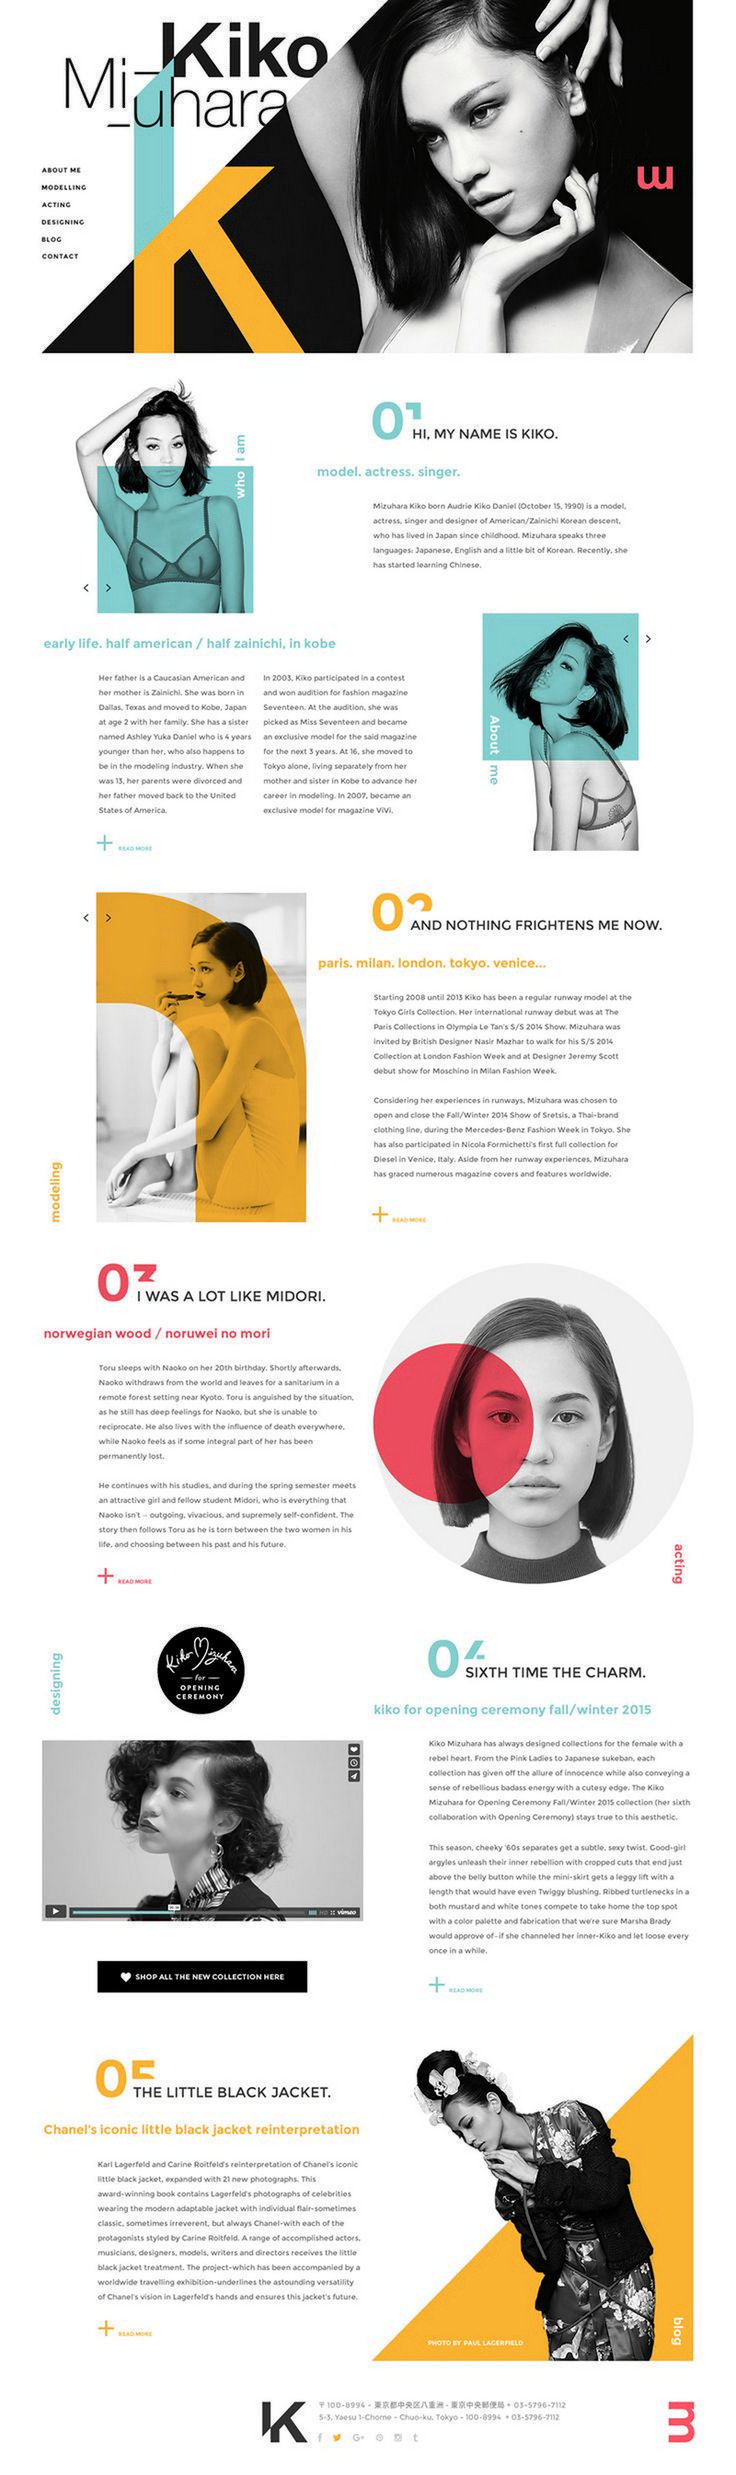 145 Awesome Magazine Layout Designs https://www.designlisticle.com/magazine-layout/ #design #layout #magazing